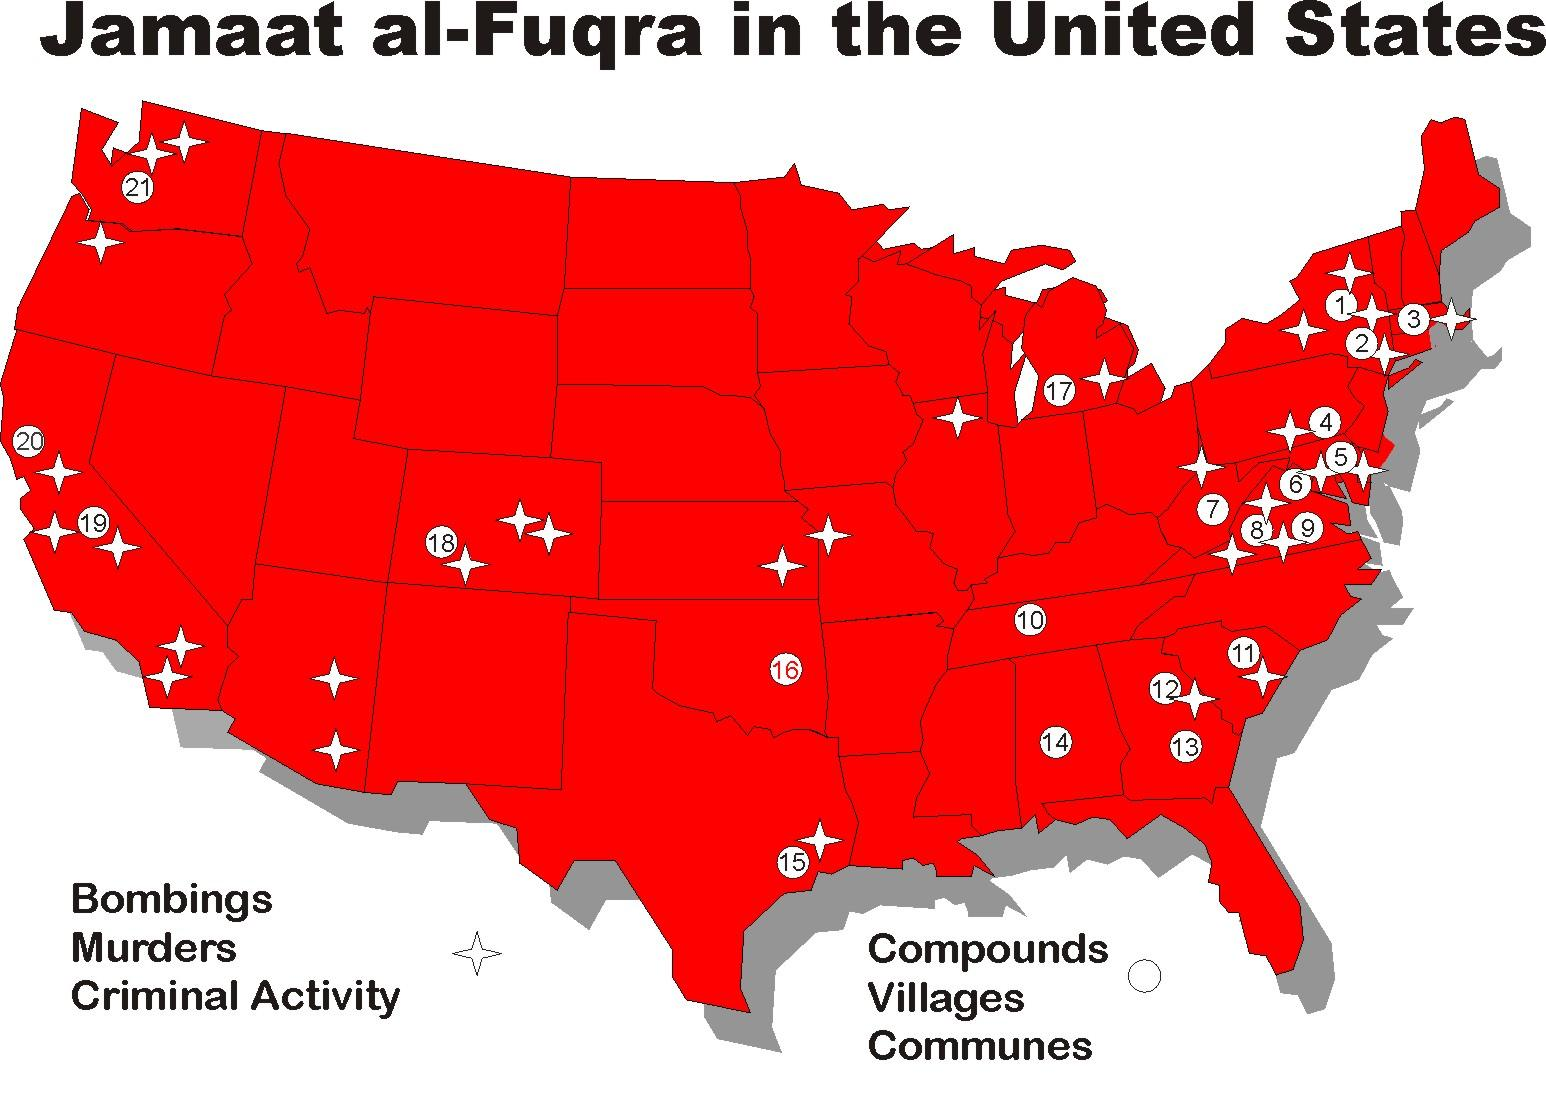 Map Terrorist Training Camps In The USA Battlefield America - Terrorist training camps in us map